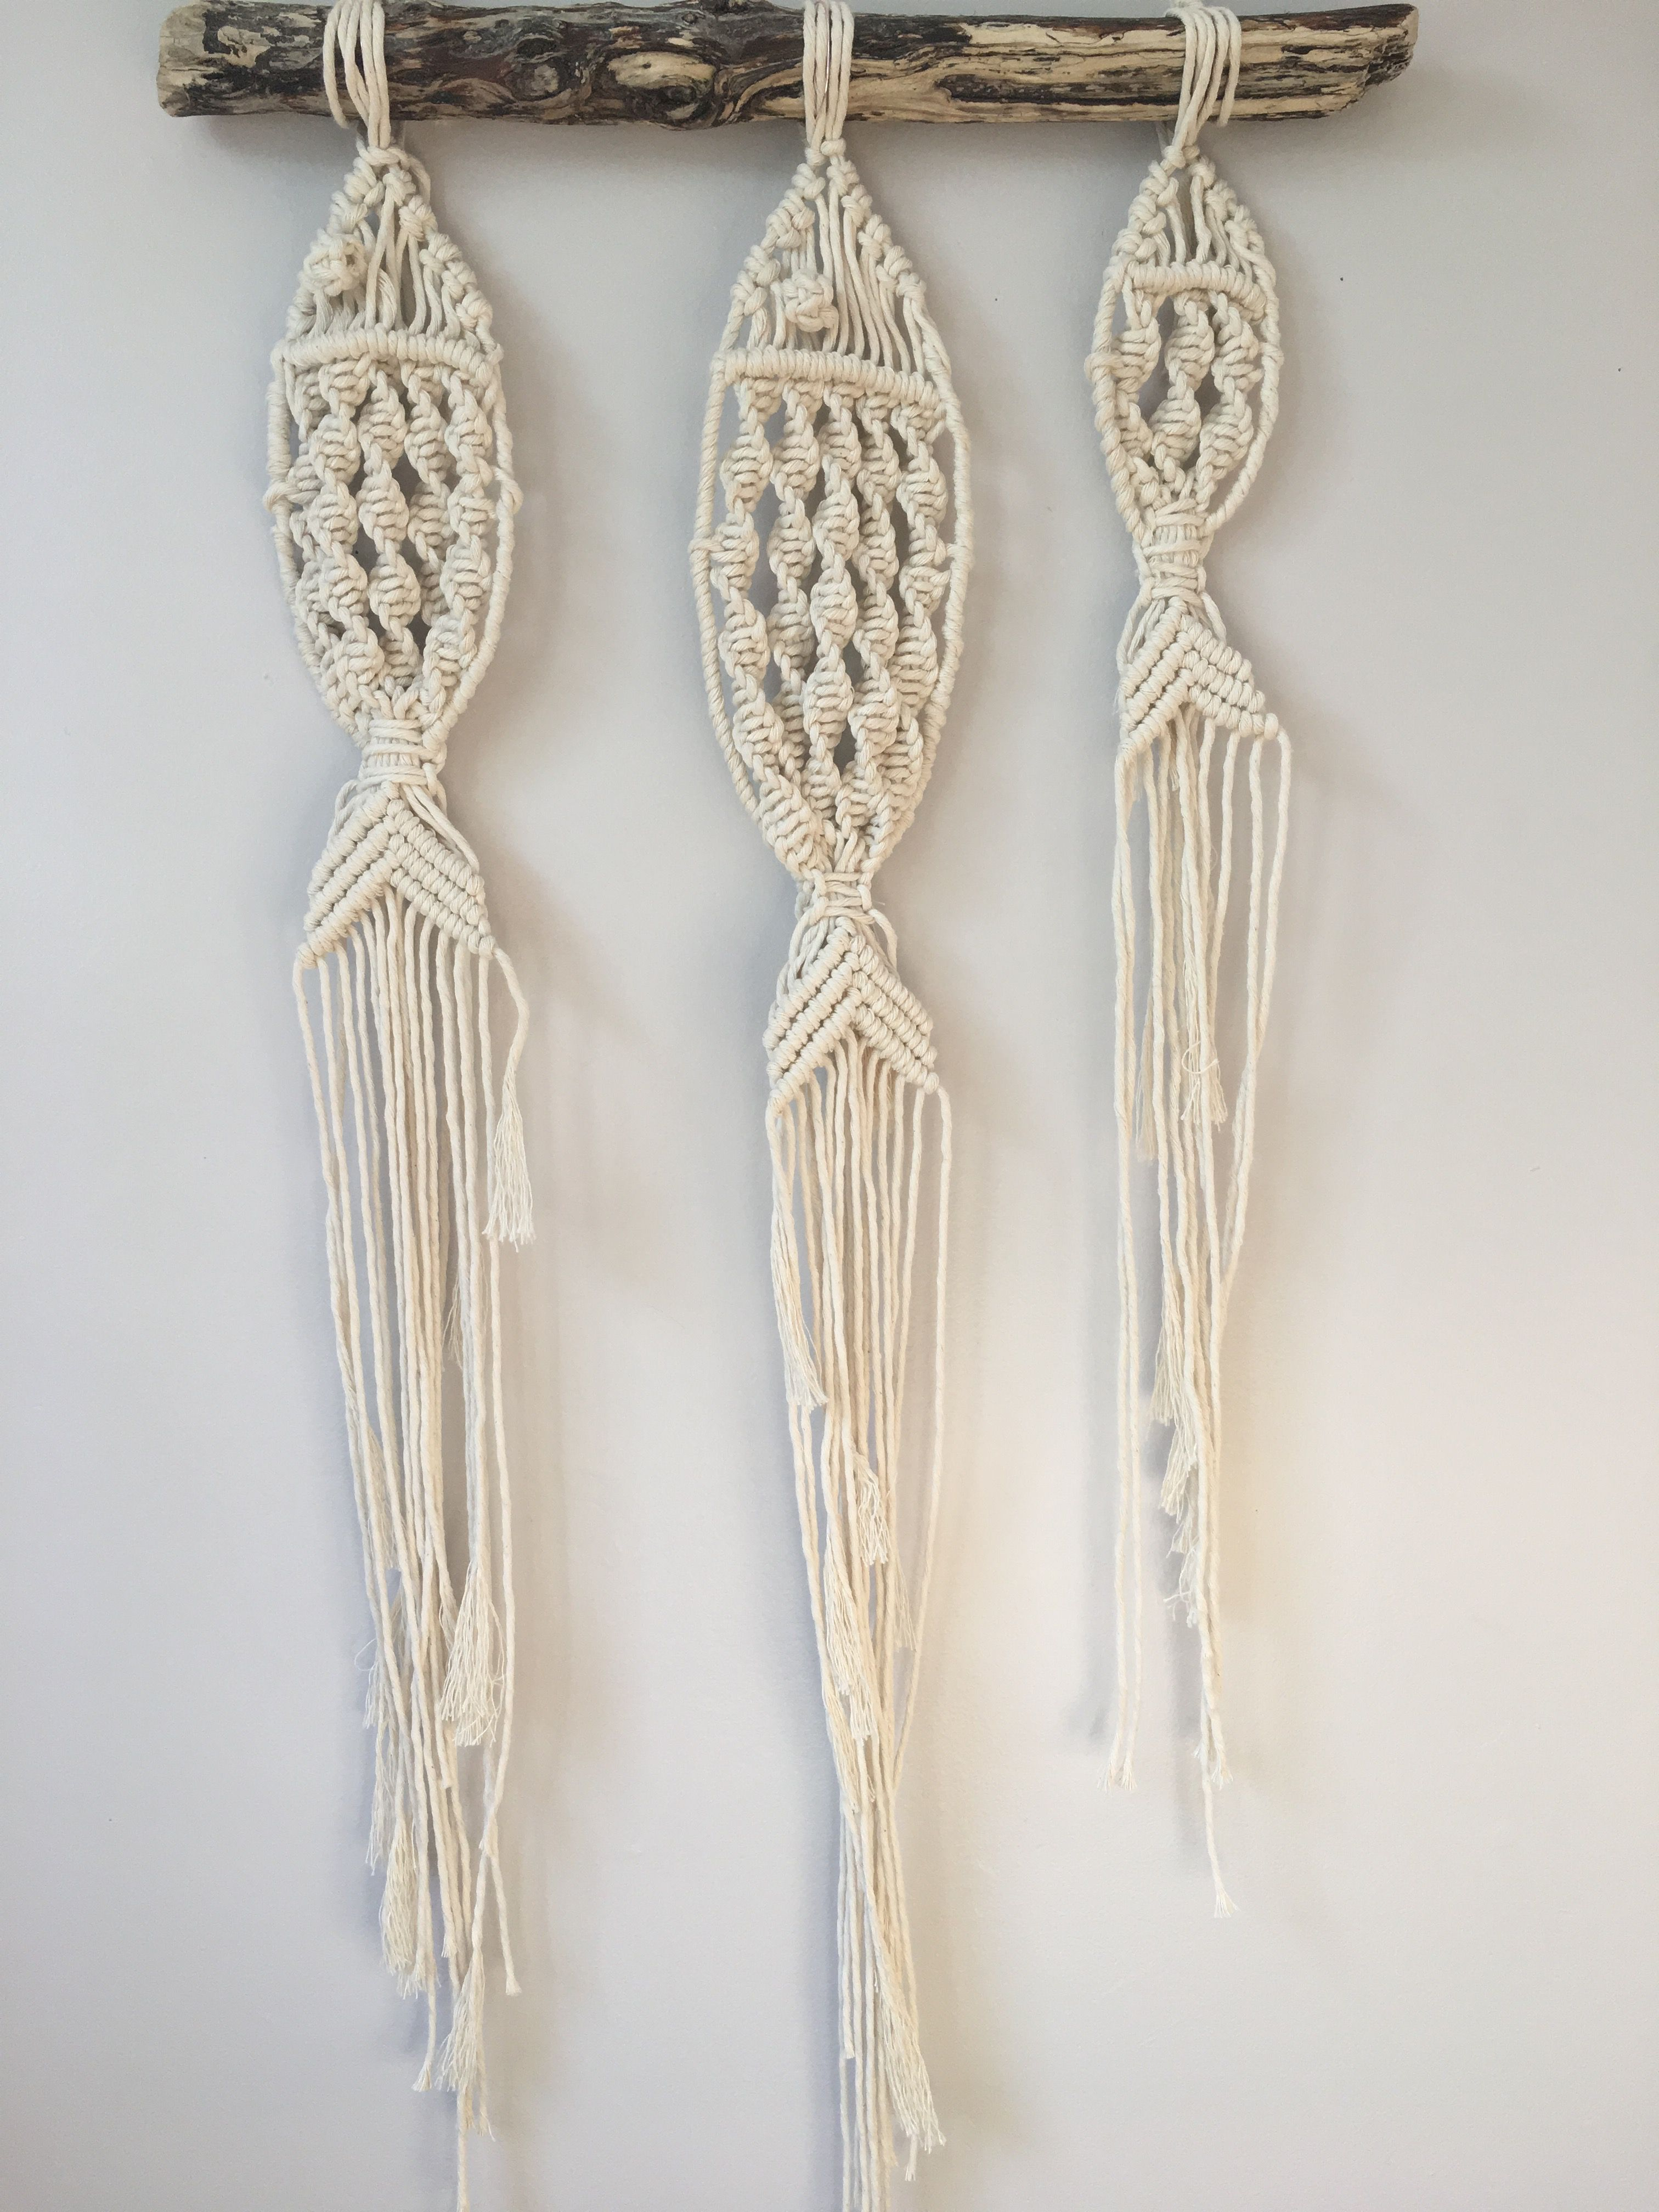 New Listing Added Check Out These Sweet Macrame Fish Macrame - Vorhang Kinderzimmer Fische